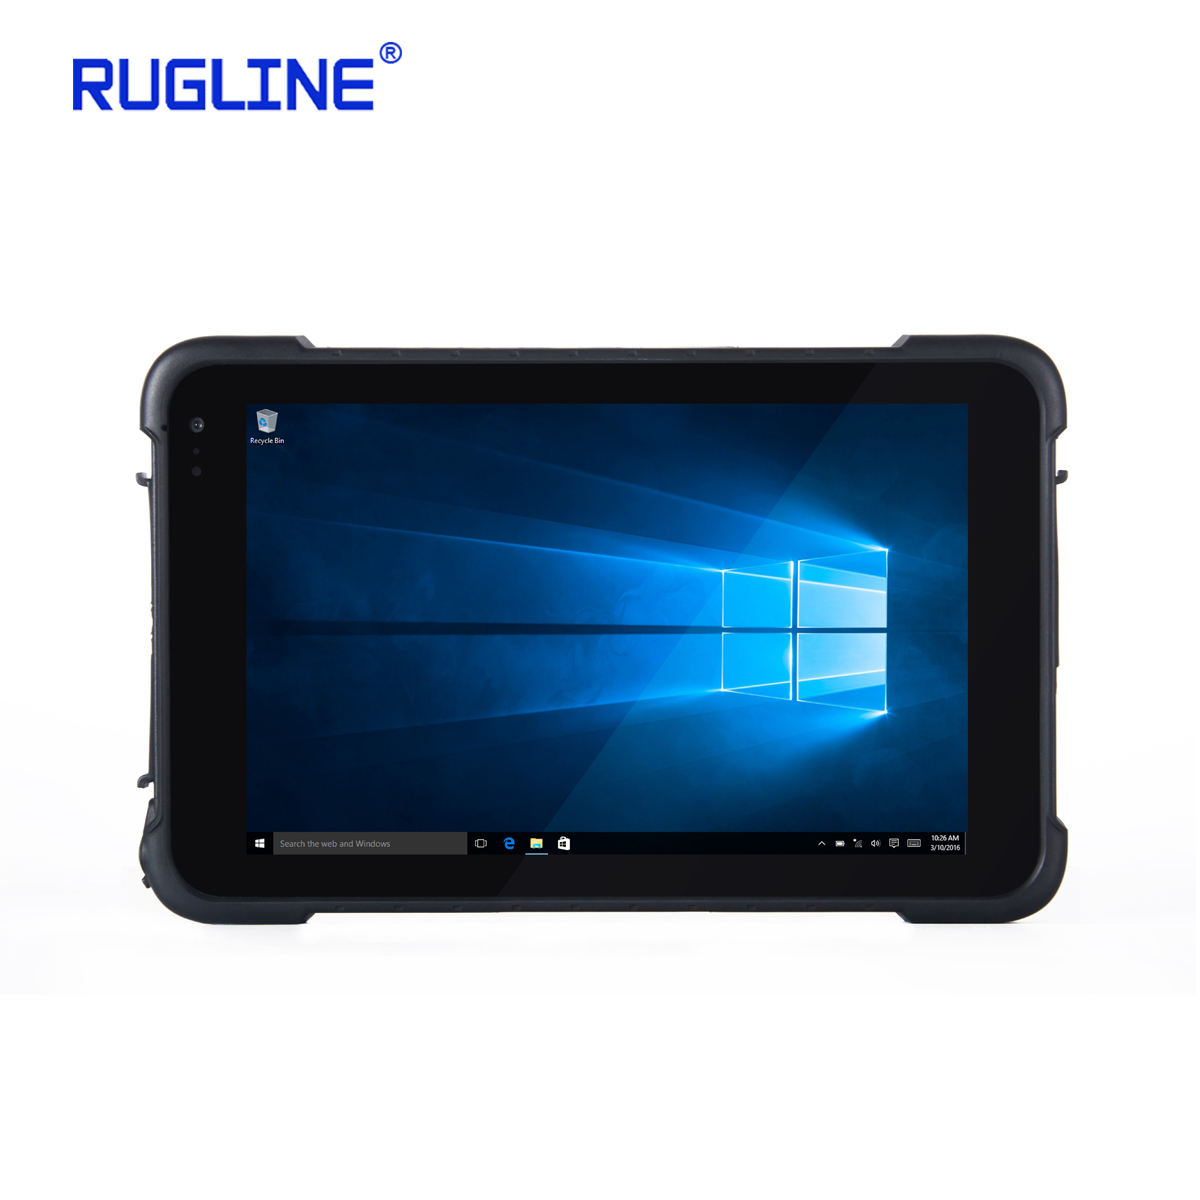 Rugline RT86 8 inch Windows 10 thuis 3G standaard layout RAM 2 GB ROM 32 GB Industriële Robuuste Tablet PC